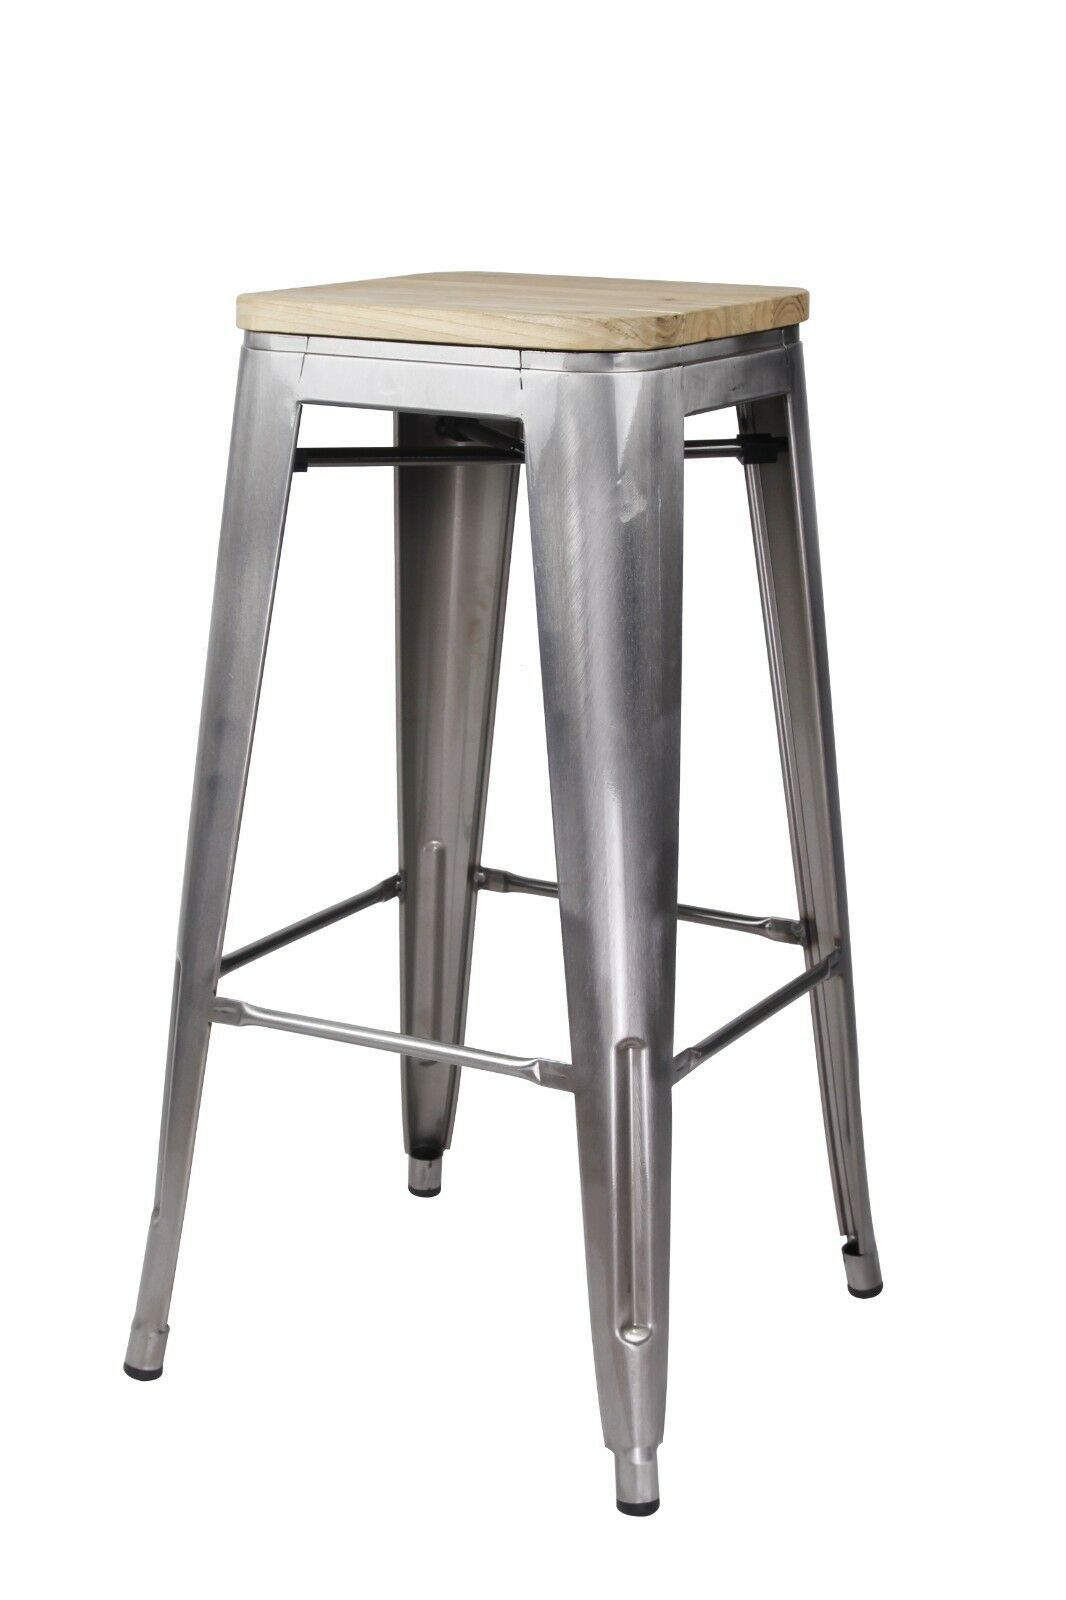 Pin On Island Stools